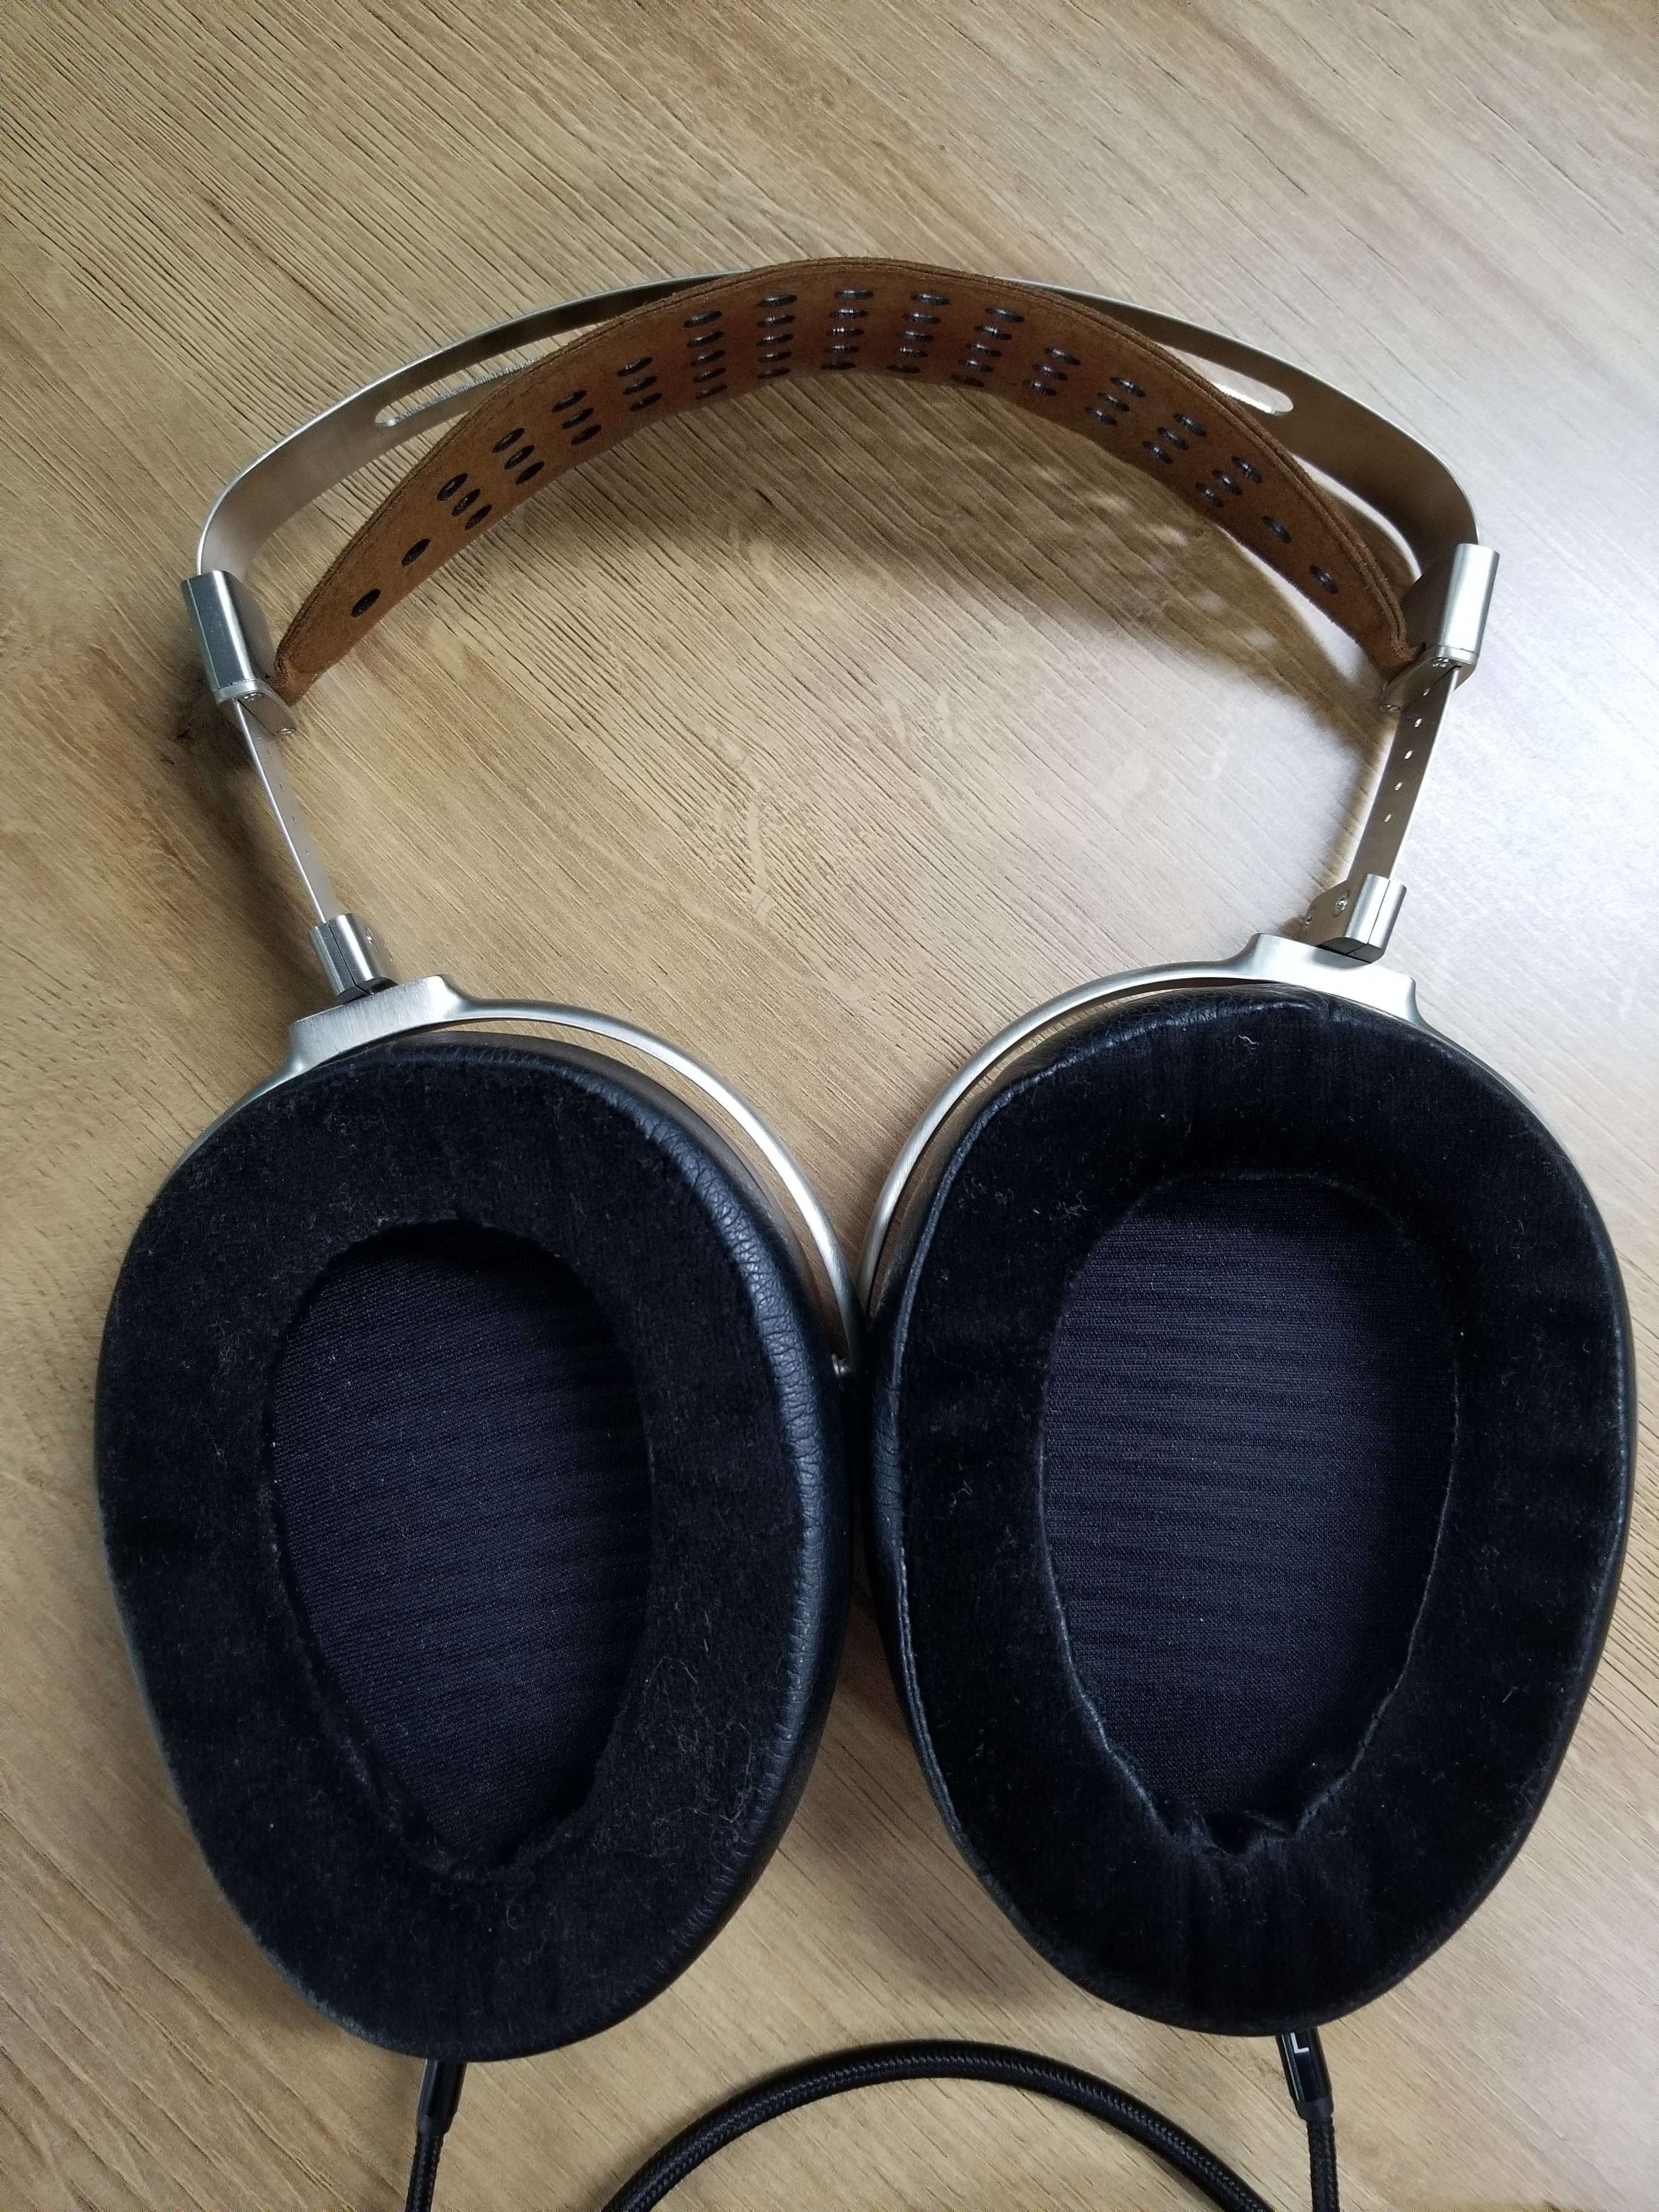 SOLD]: Mint HiFiMAN HE-1000 HEKv1 (free shipping & PayPal